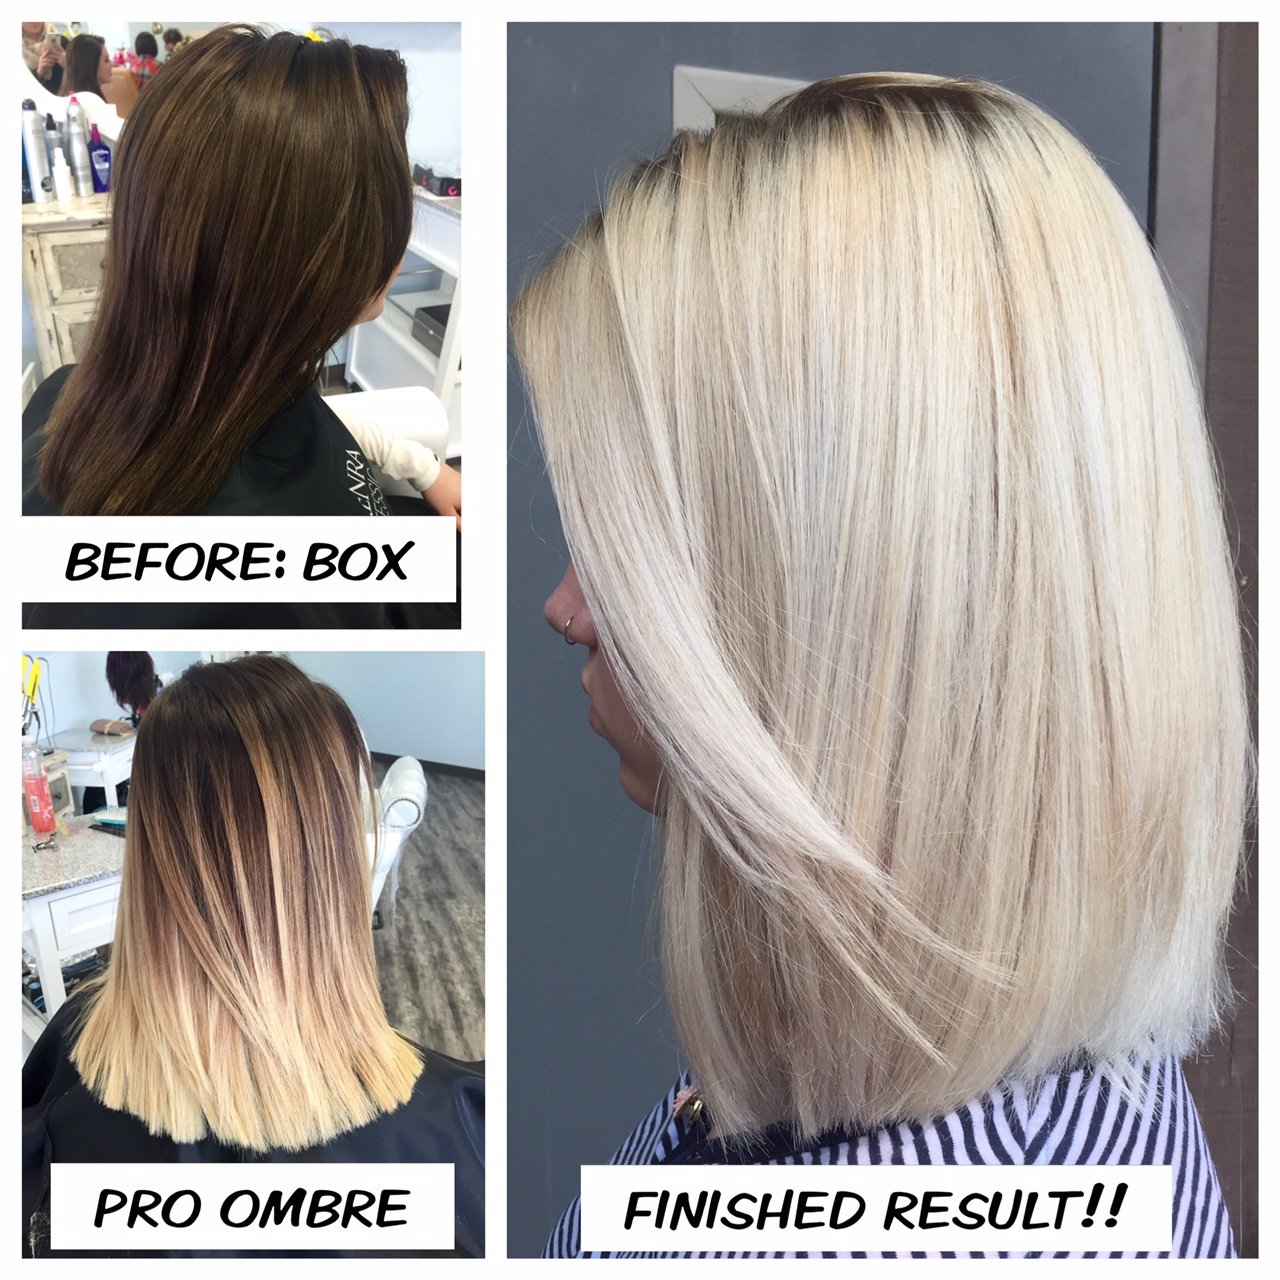 THE JOURNEY: Box To Ombre To Pro Ice